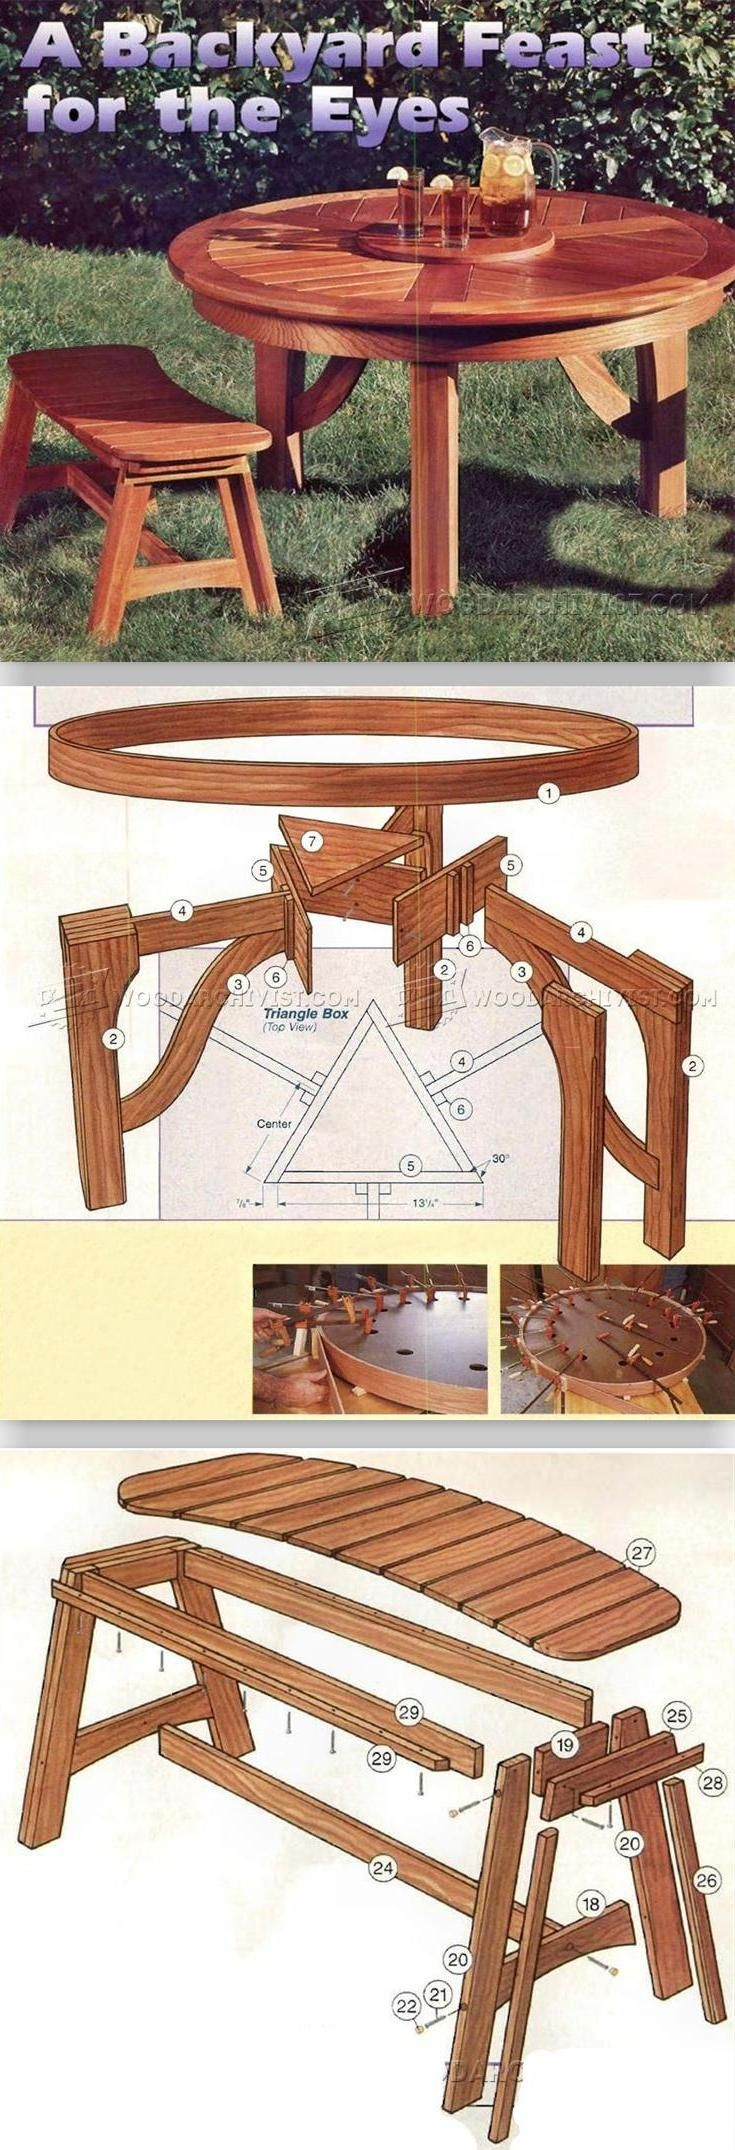 Round Picnic Table Plans - Outdoor Furniture Plans and Projects | WoodArchivist.com